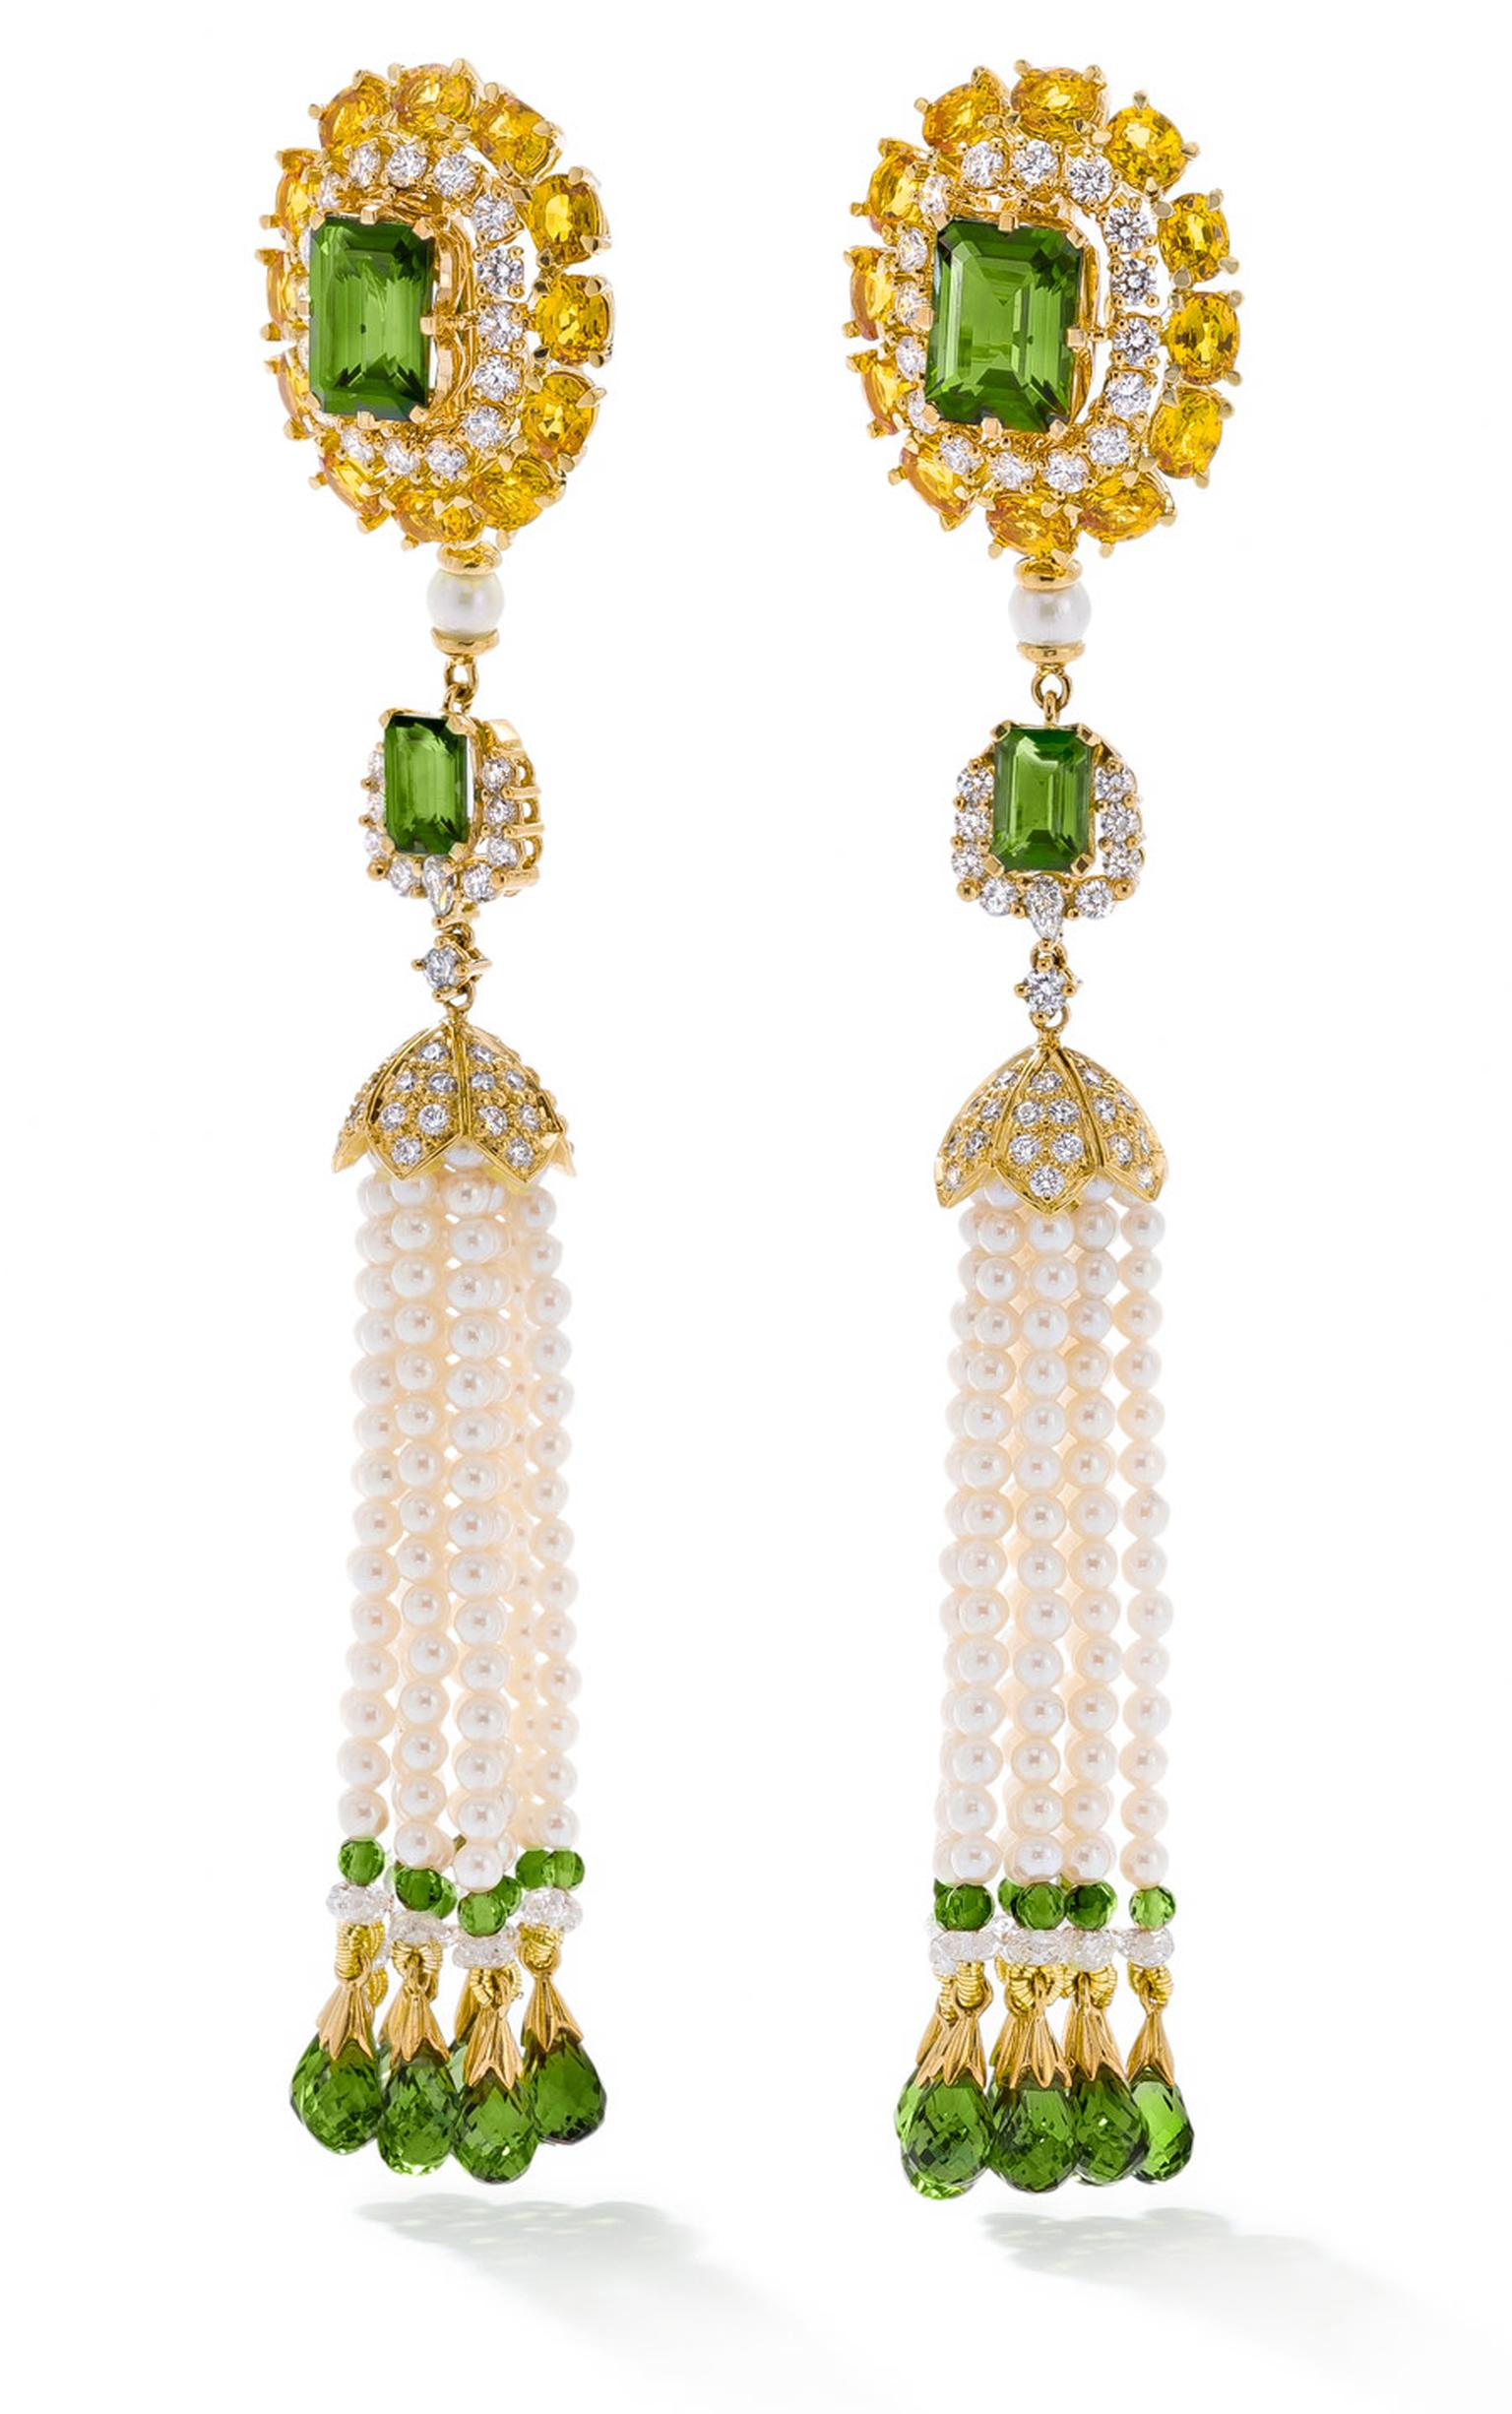 Earrings---Nizam-collection-Ganjam.jpg